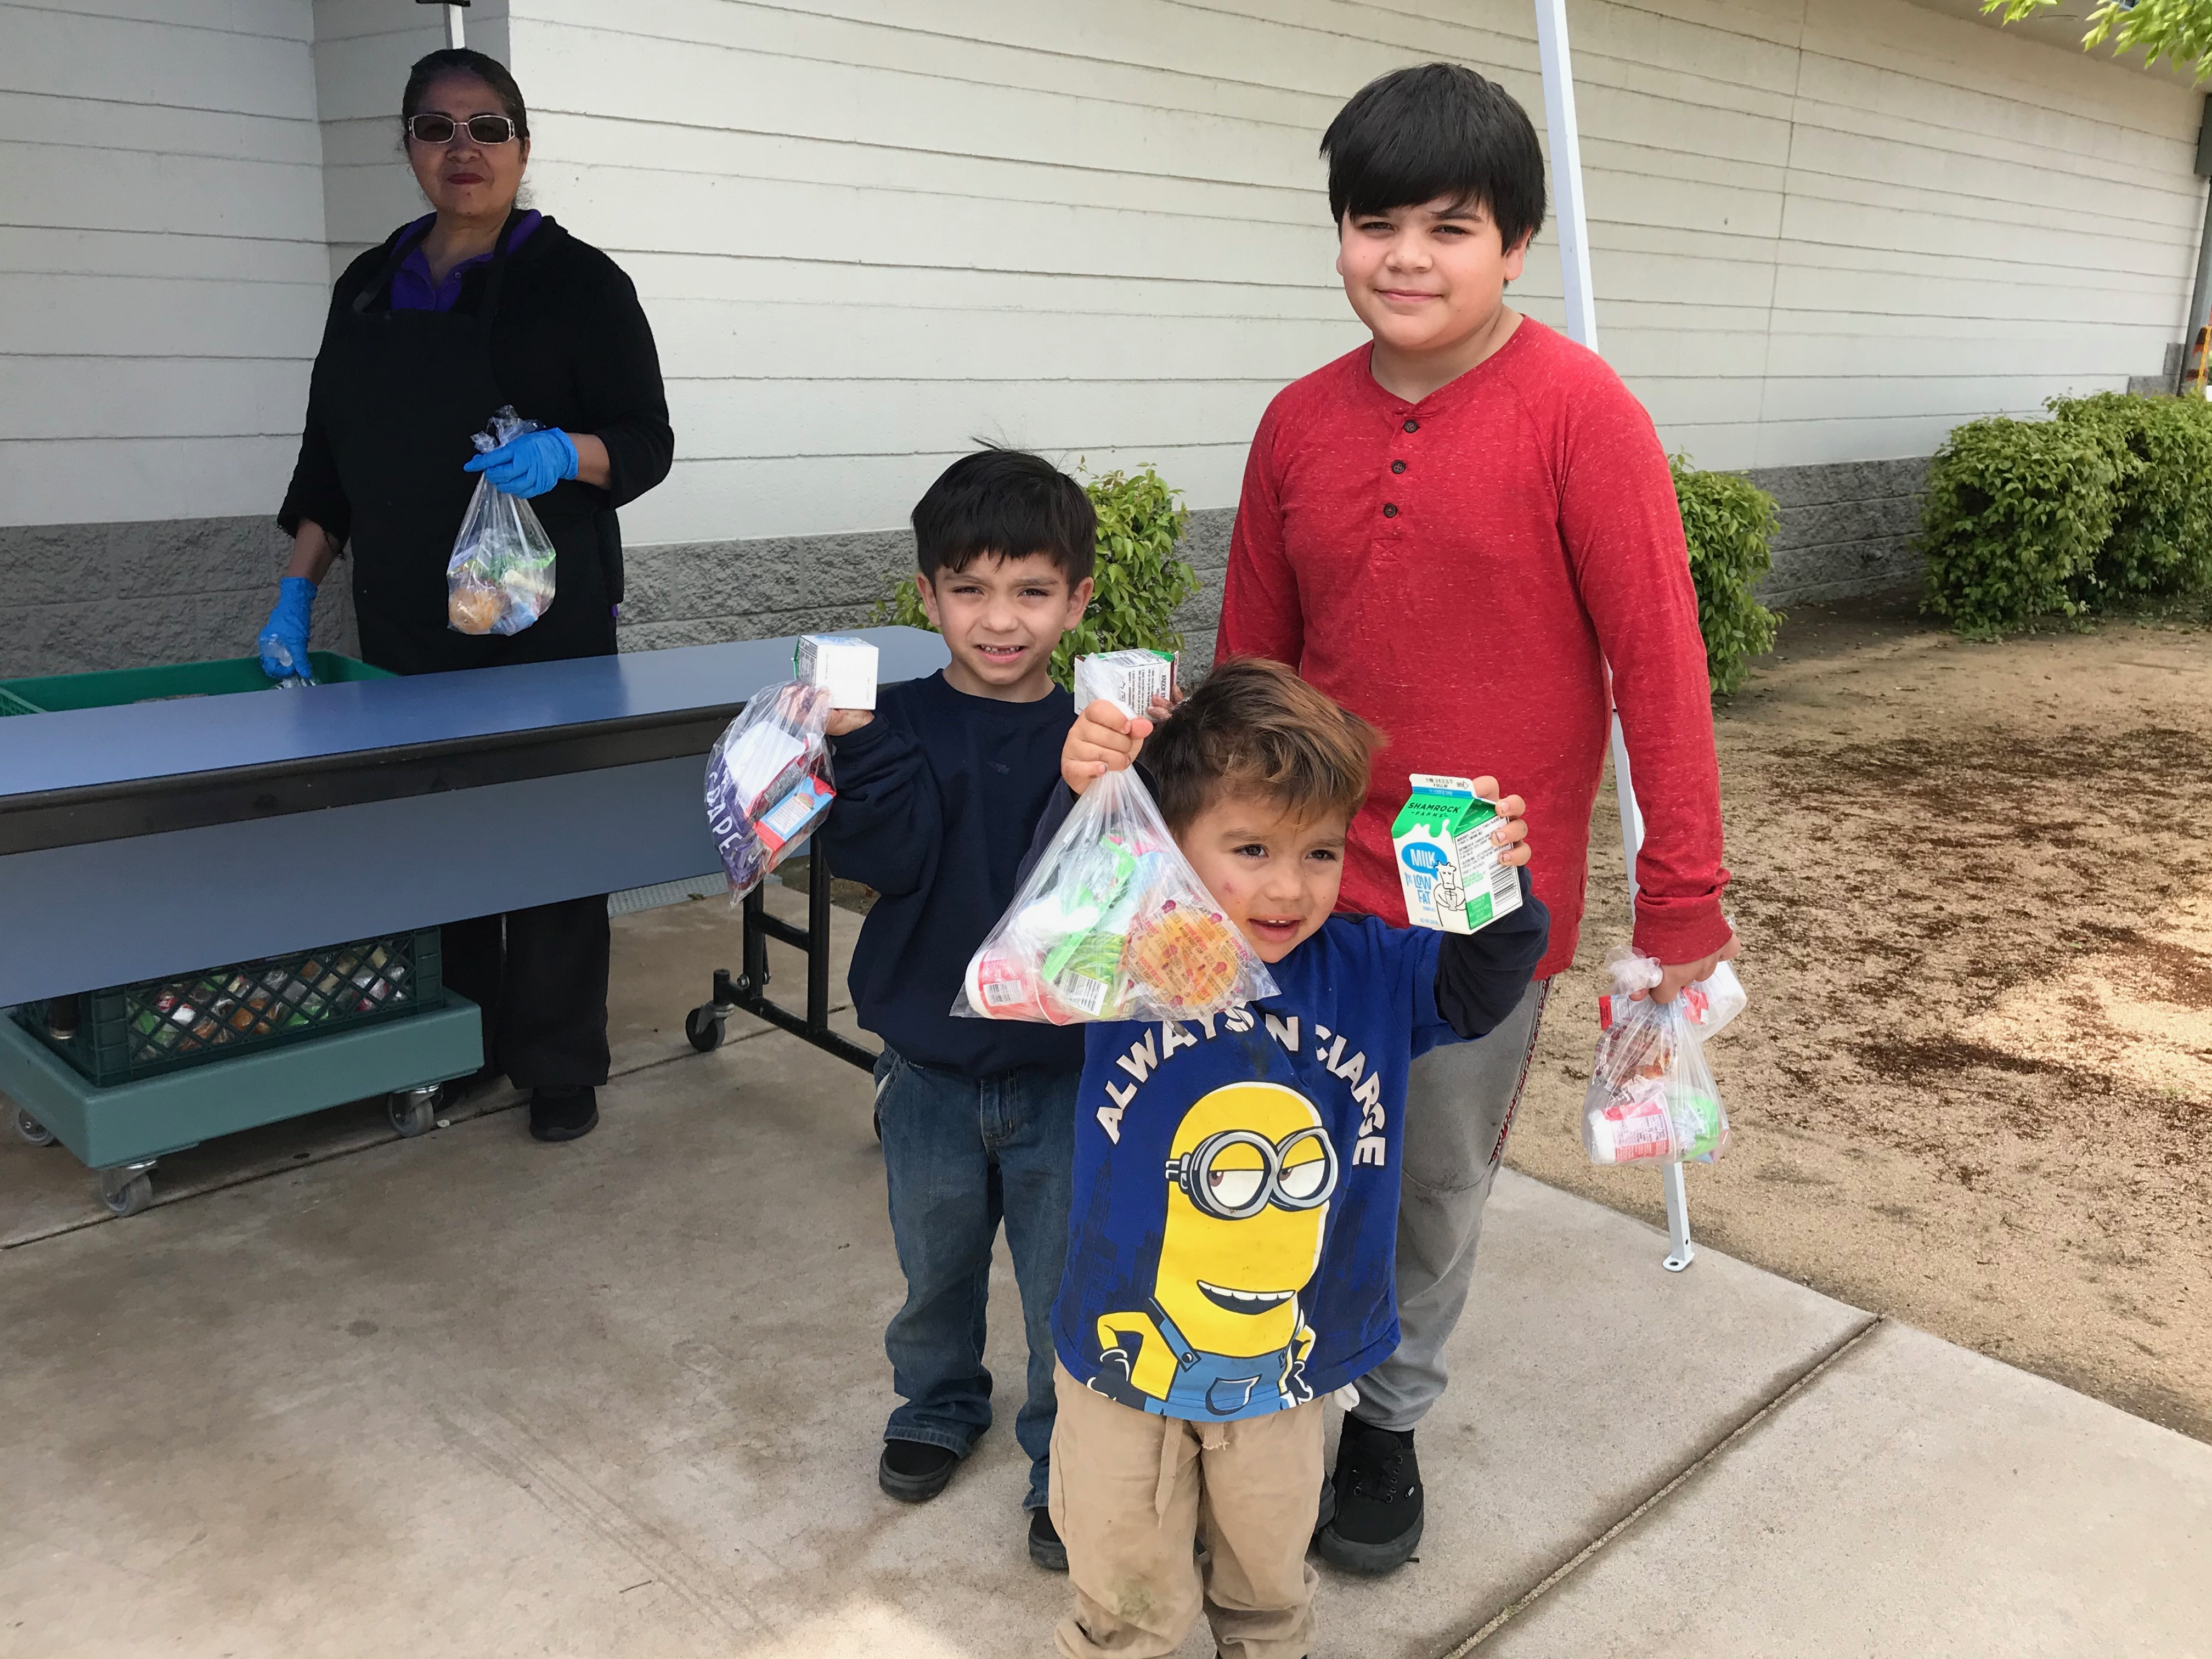 Each child gets two school lunches and breakfasts each time they visit one of the Alhambra Elementary School District's mobile food distribution spots in Phoenix.